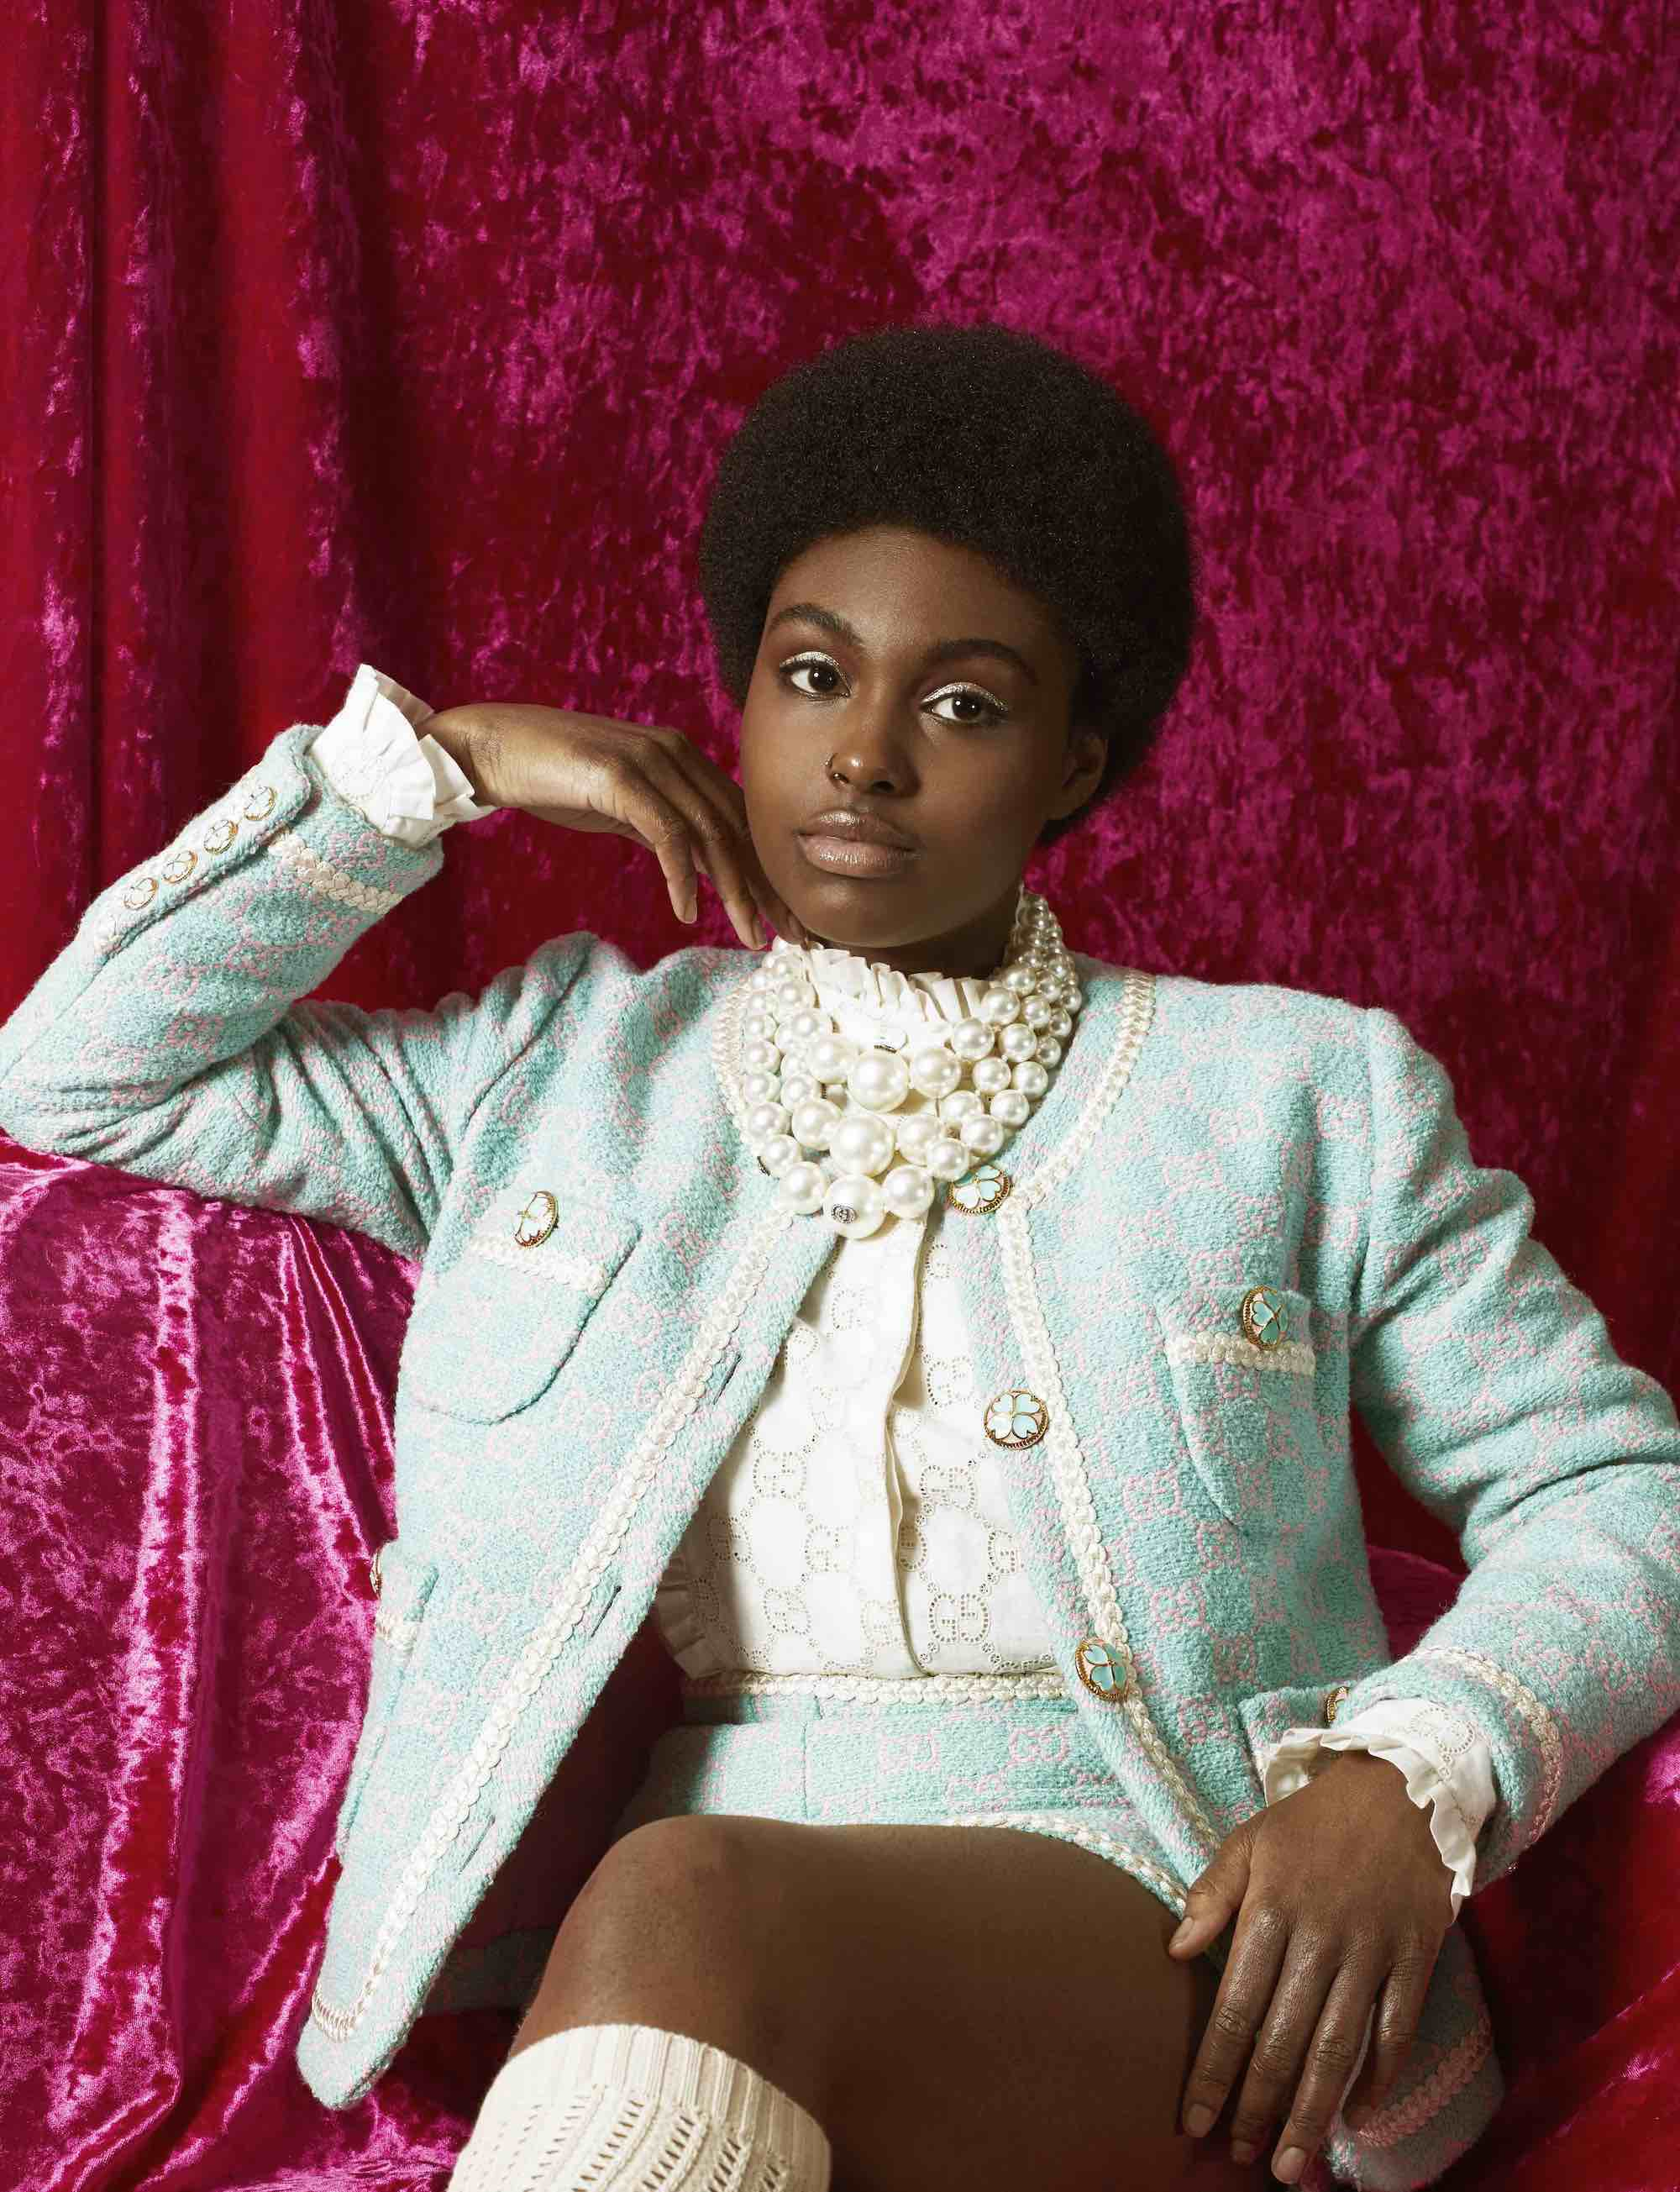 Tiana Major9 wearing Gucci Pre-Fall 2019 for Summer 2019 issue sitting down